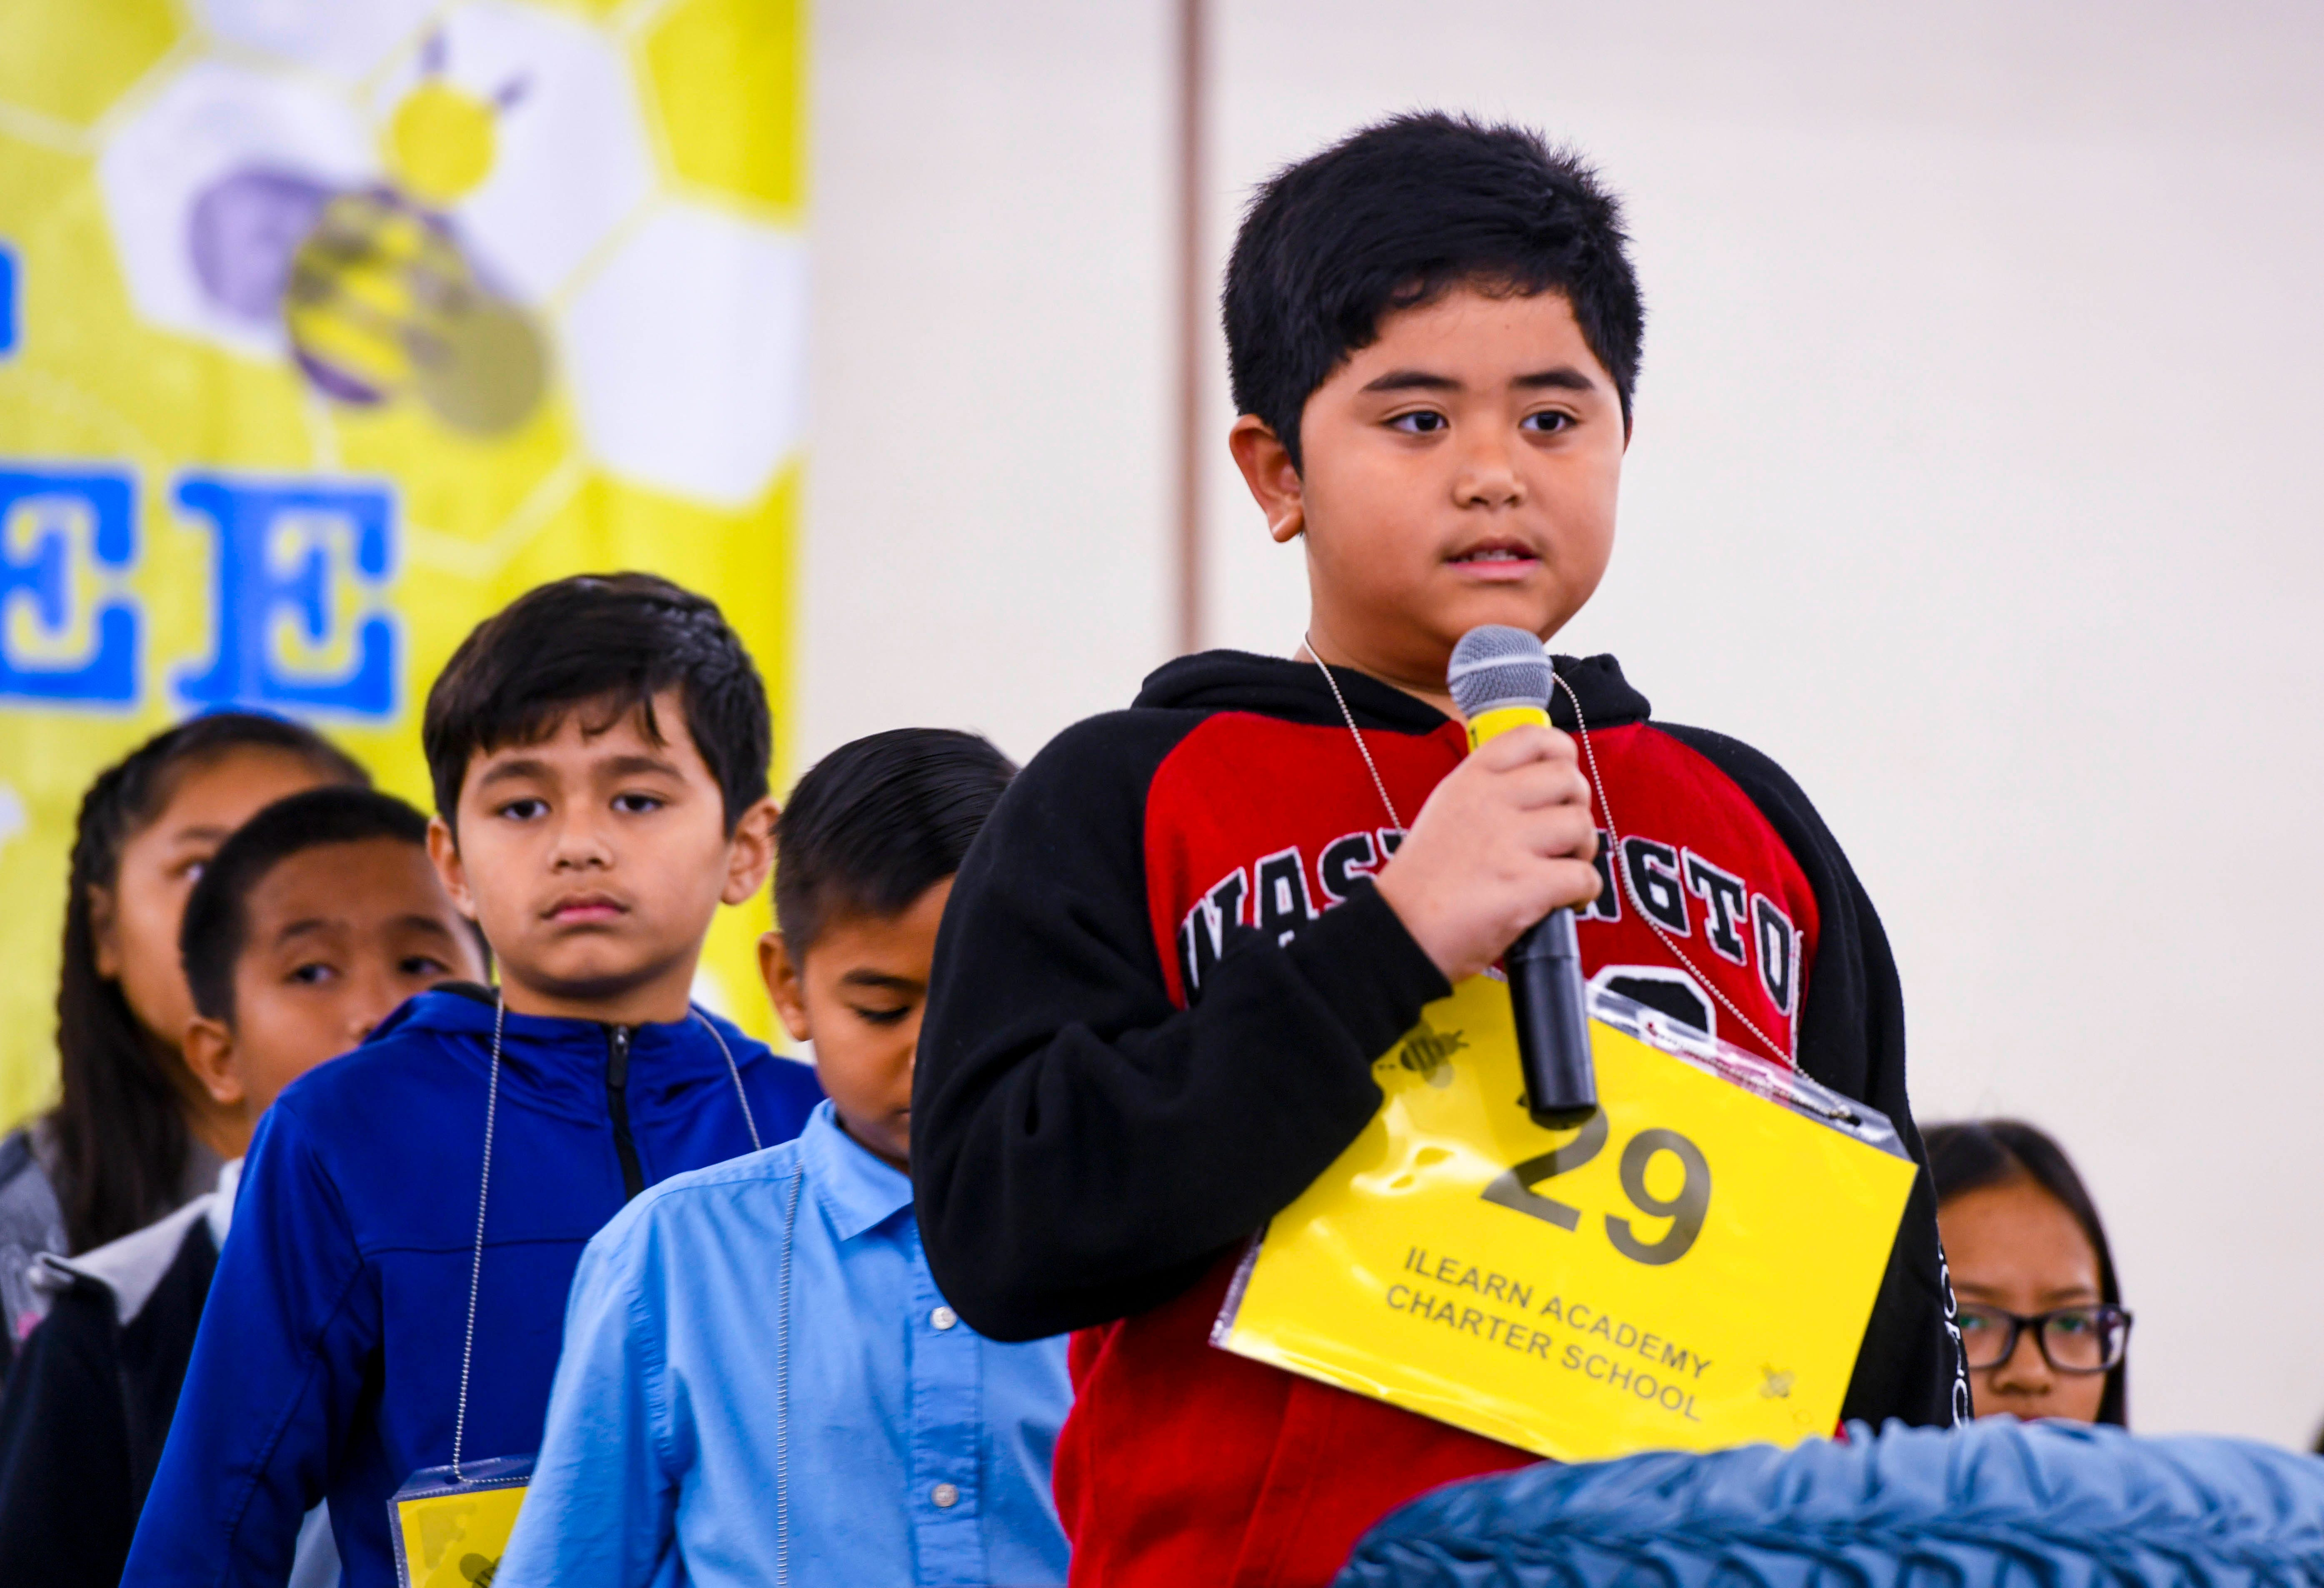 Third-grader Lance Sanchez represents iLearn Academy Charter School during his participation in the 48th Annual Scripps Regional Spelling Bee at the Hotel Nikko Guam in Tumon on Saturday, March 7, 2020.